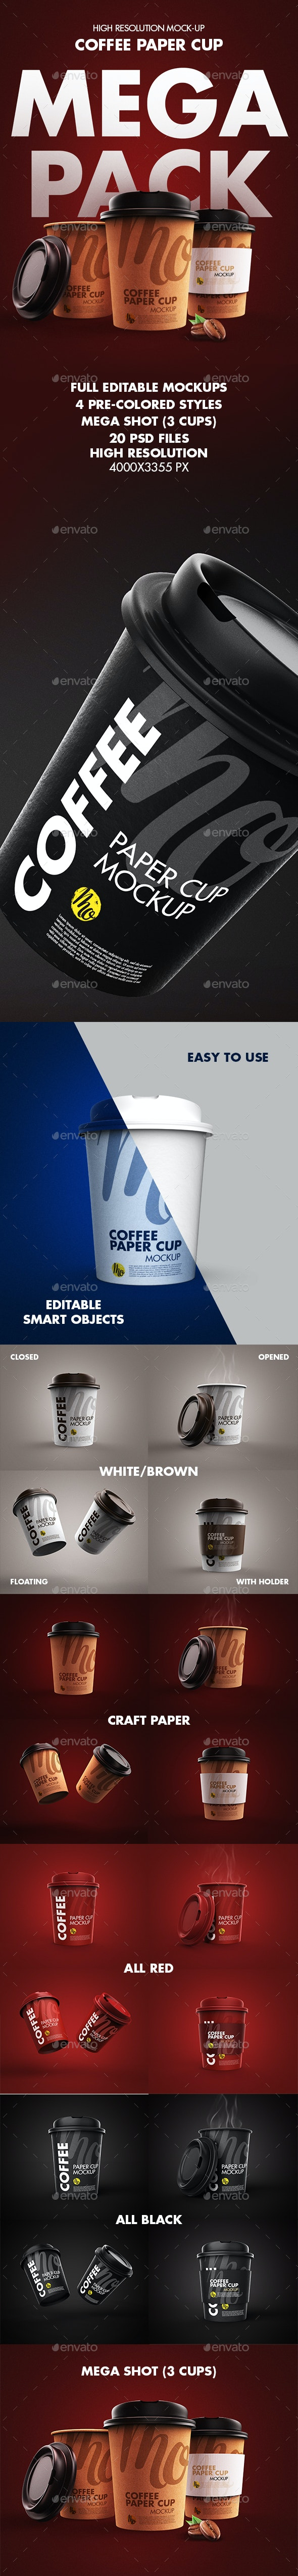 Paper Coffee Cup Mock-up Mega Pack - Product Mock-Ups Graphics